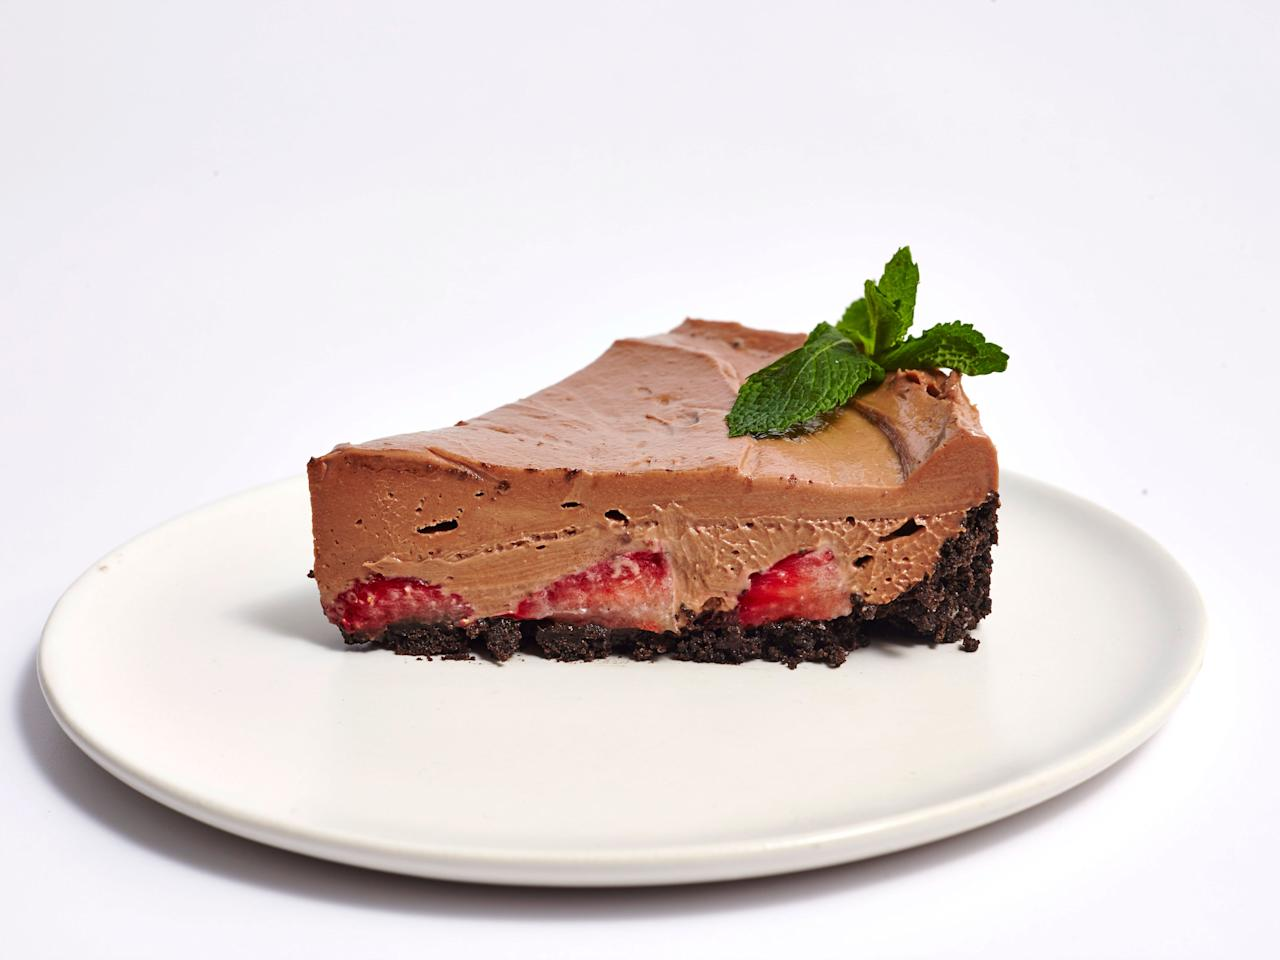 """<p>Strawberry season is an indicator of two things; it means the sun is out and the oven is off. Take a break from a hot kitchen to make this easy, fresh and stress-free no-bake Nutella flavored cheesecake. The hazelnut spread not only gives the cheesecake a velvety texture and chocolatey taste, but it also helps stabilize the pie to set up a creamy yet firm consistency when chilled. The addition of condensed milk adds a touch of milky sweetness and the lemon juice creates a mellow, zesty flavor that balances the cheesecake's sweetness. You can prepare the crust a day ahead and also chill cheesecake overnight. This cheesecake will be a hit at any summer event, and it's a great way to use up the season's favorite berry. </p> <p><a href=""""https://www.myrecipes.com/recipe/no-bake-strawberry-nutella-cheesecake"""">No-Bake Strawberry Nutella Cheesecake Recipe</a></p>"""